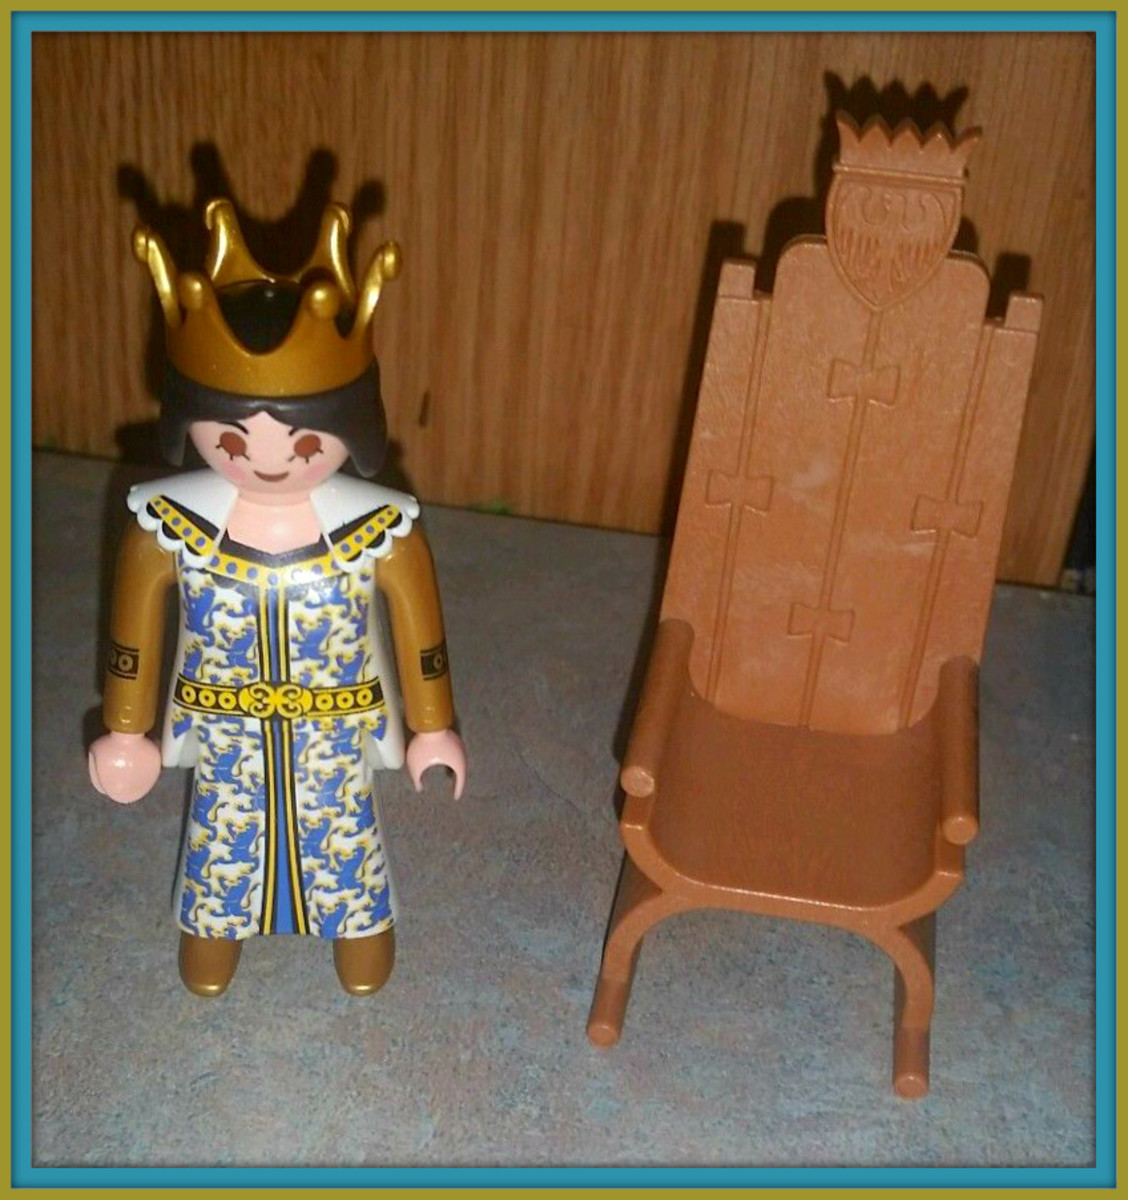 Beautiful Playmobil Medieval Queen & Throne from  the Lion's Castle. She is wearing a nice crown that matches her gown and sits in the thrown very nicely.